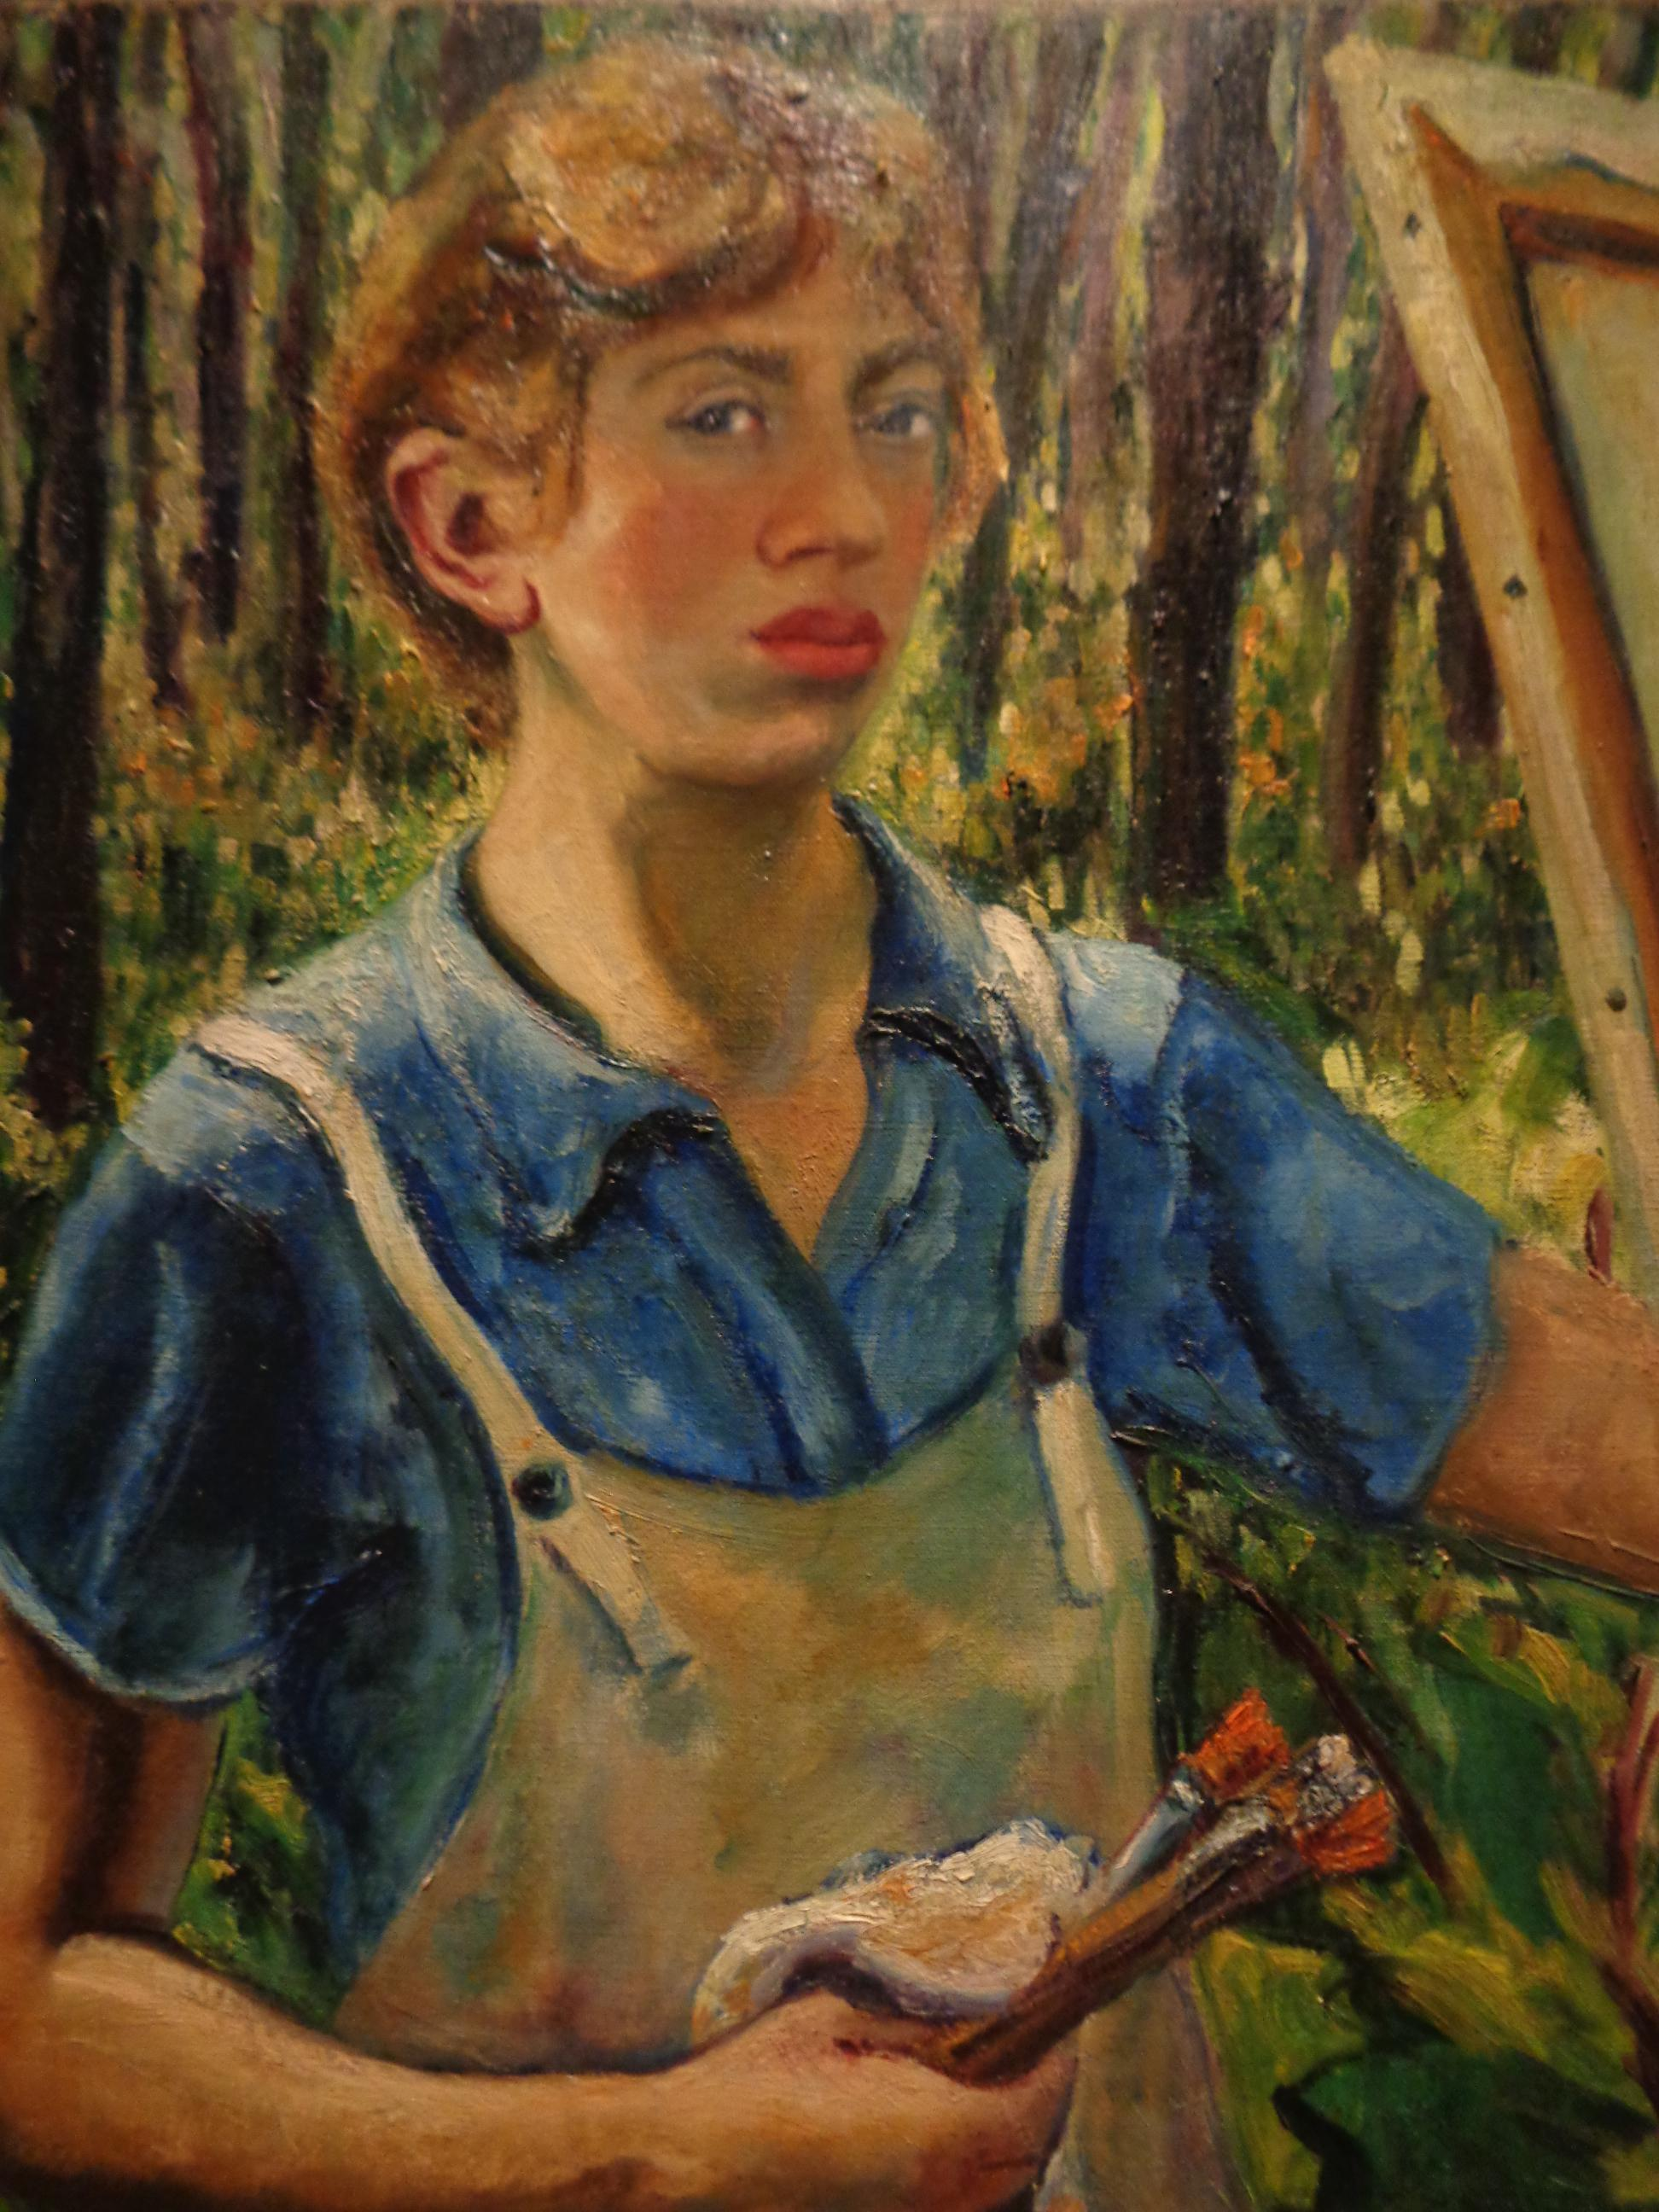 Lee Krasner, Self Portrait c 1928,The Jewish Museum, New York